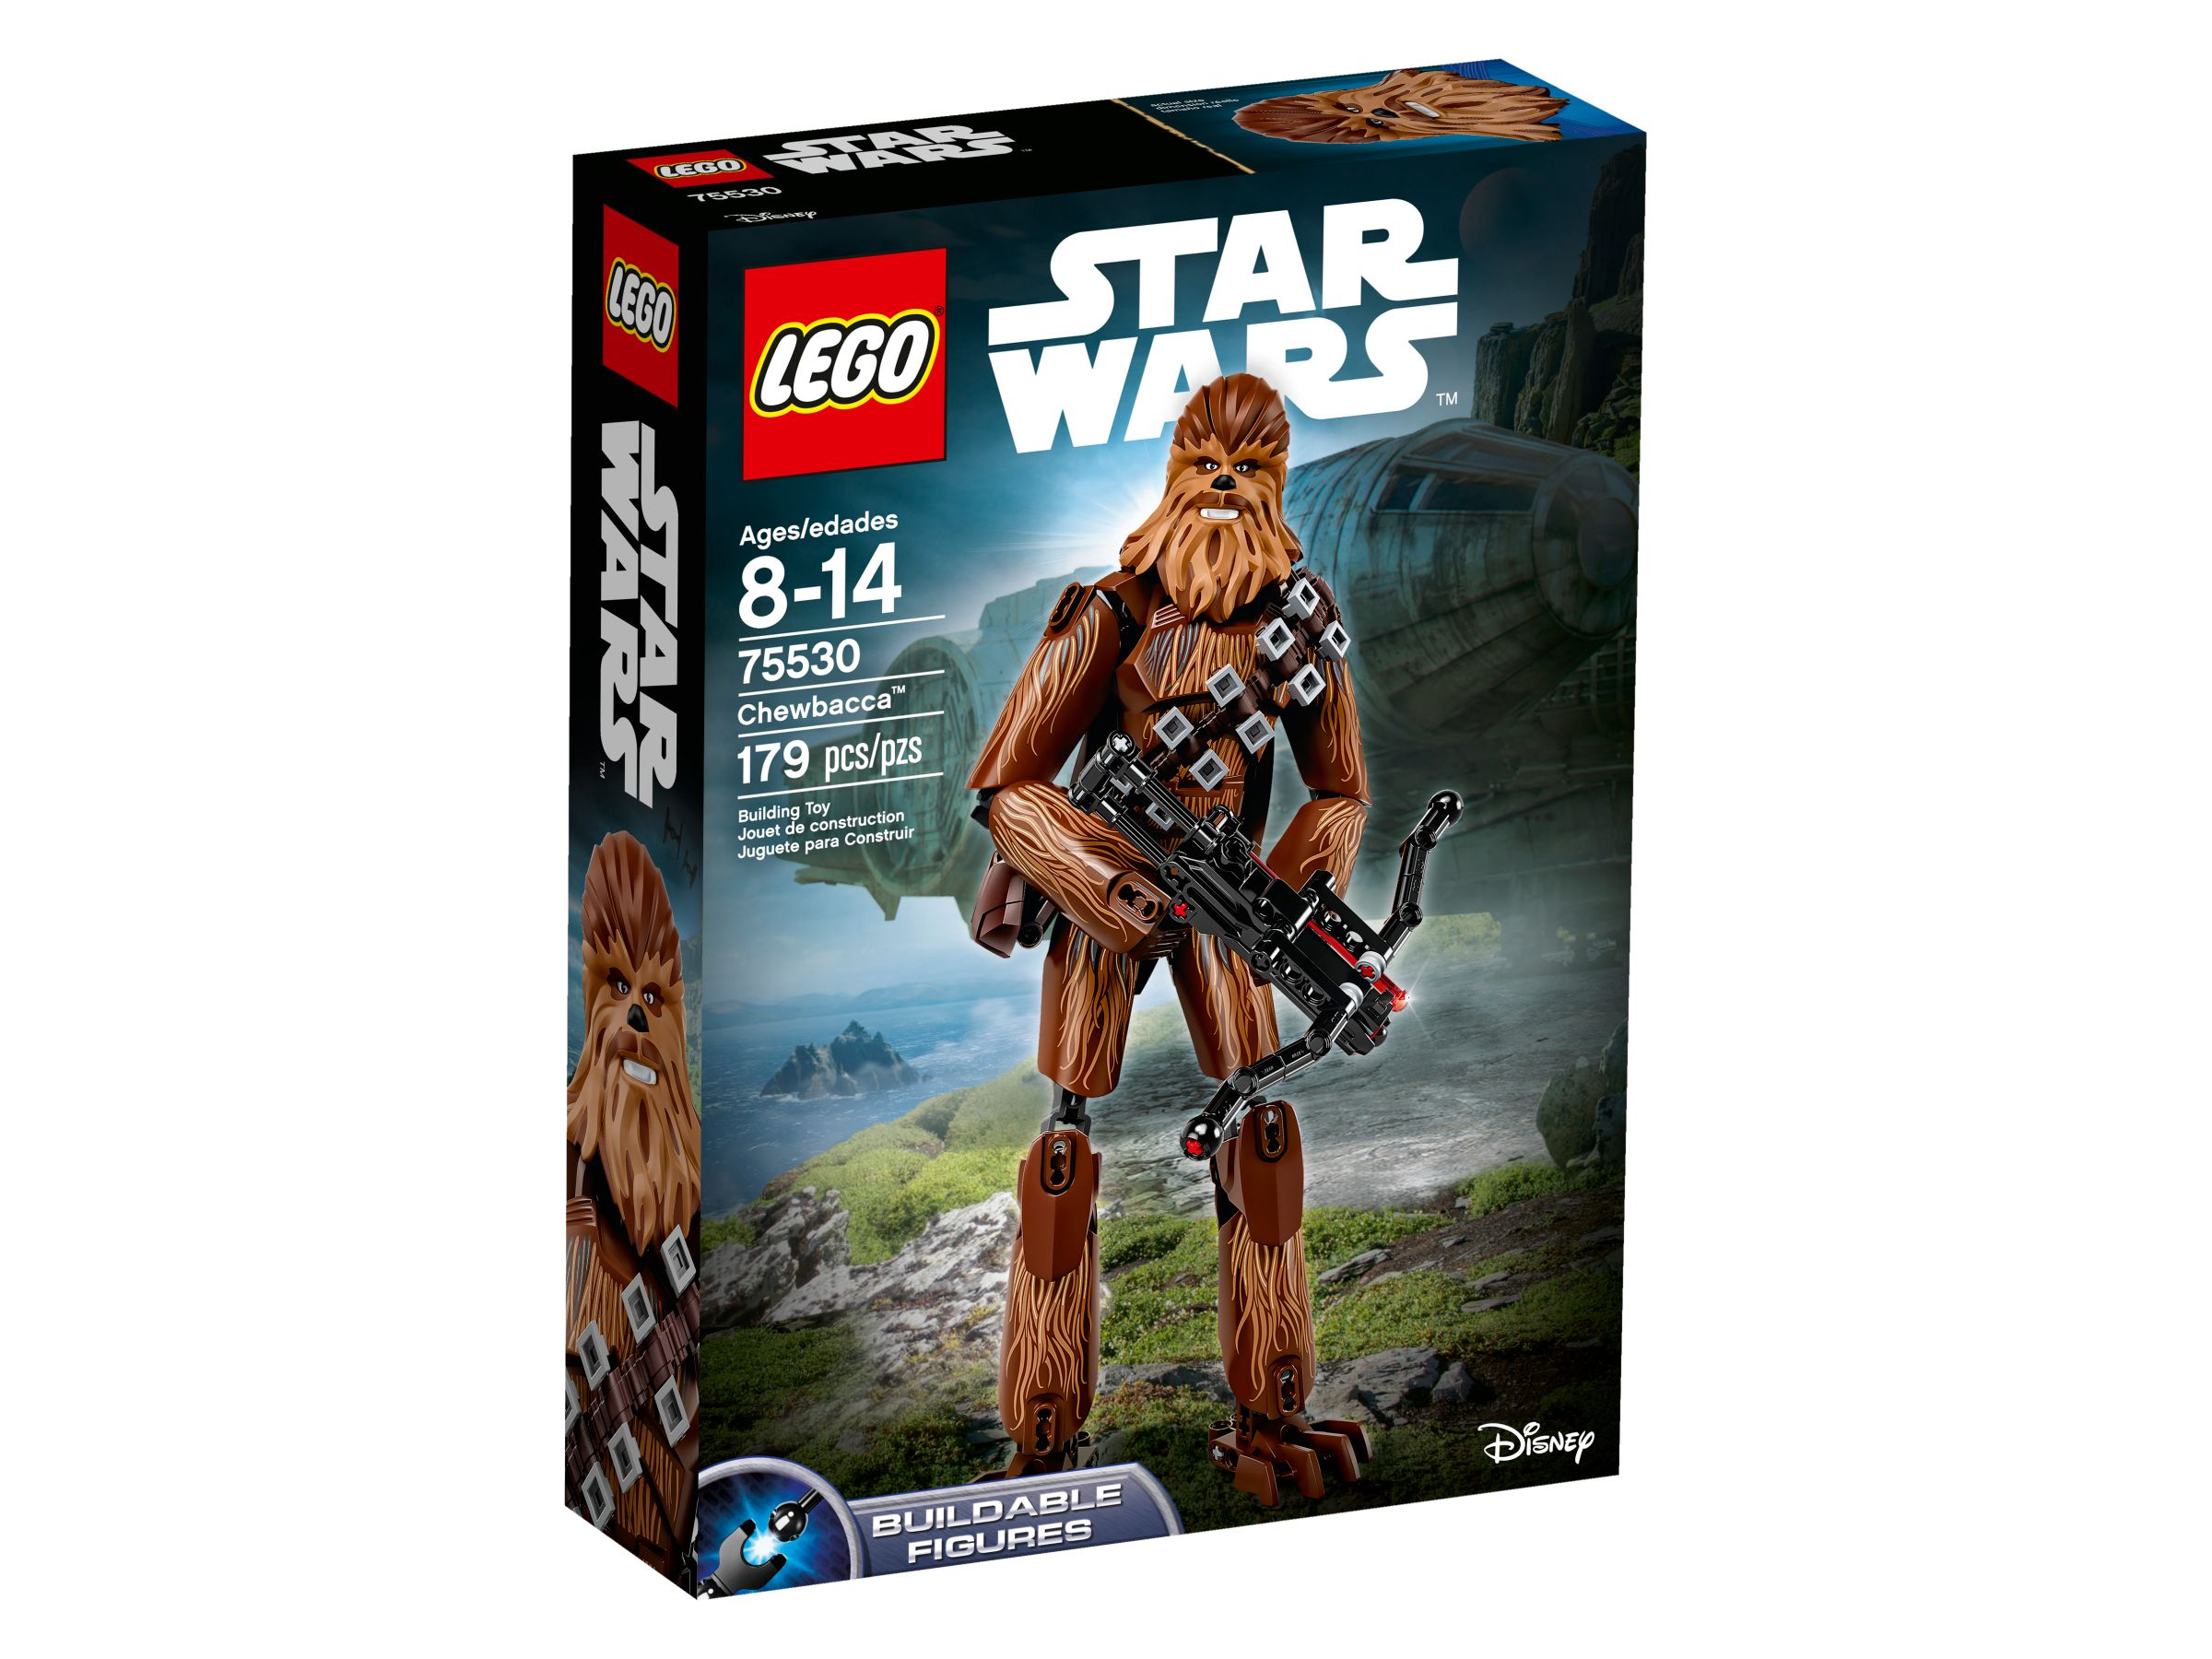 LEGO Star Wars Buildable Figures 75530 Chewbacca™ LEGO_75530_alt1.jpg